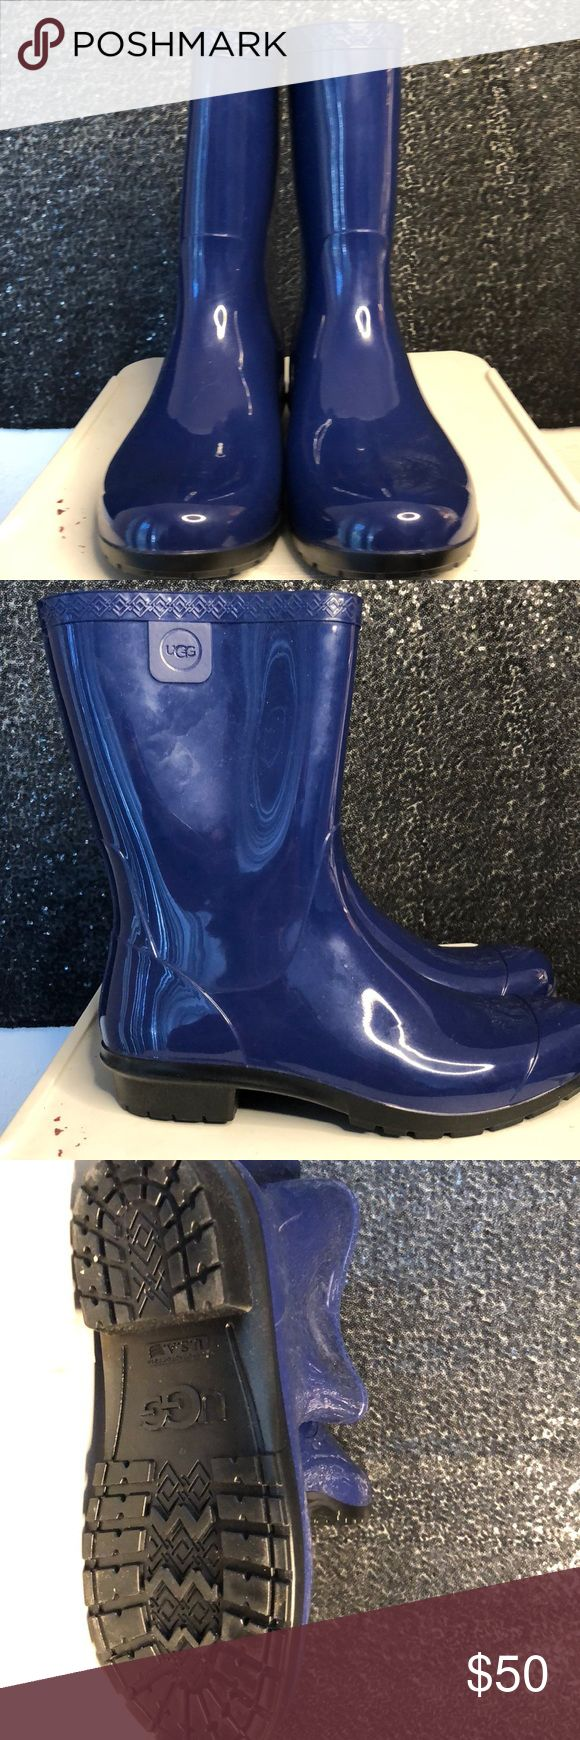 Ugg Rain Boots with soft lining Ugg Rain Boots Size 9 Blue with soft Ugg Lining Mid calf No box  Gently used, maybe worn once or twice UGG Shoes Winter & Rain Boots